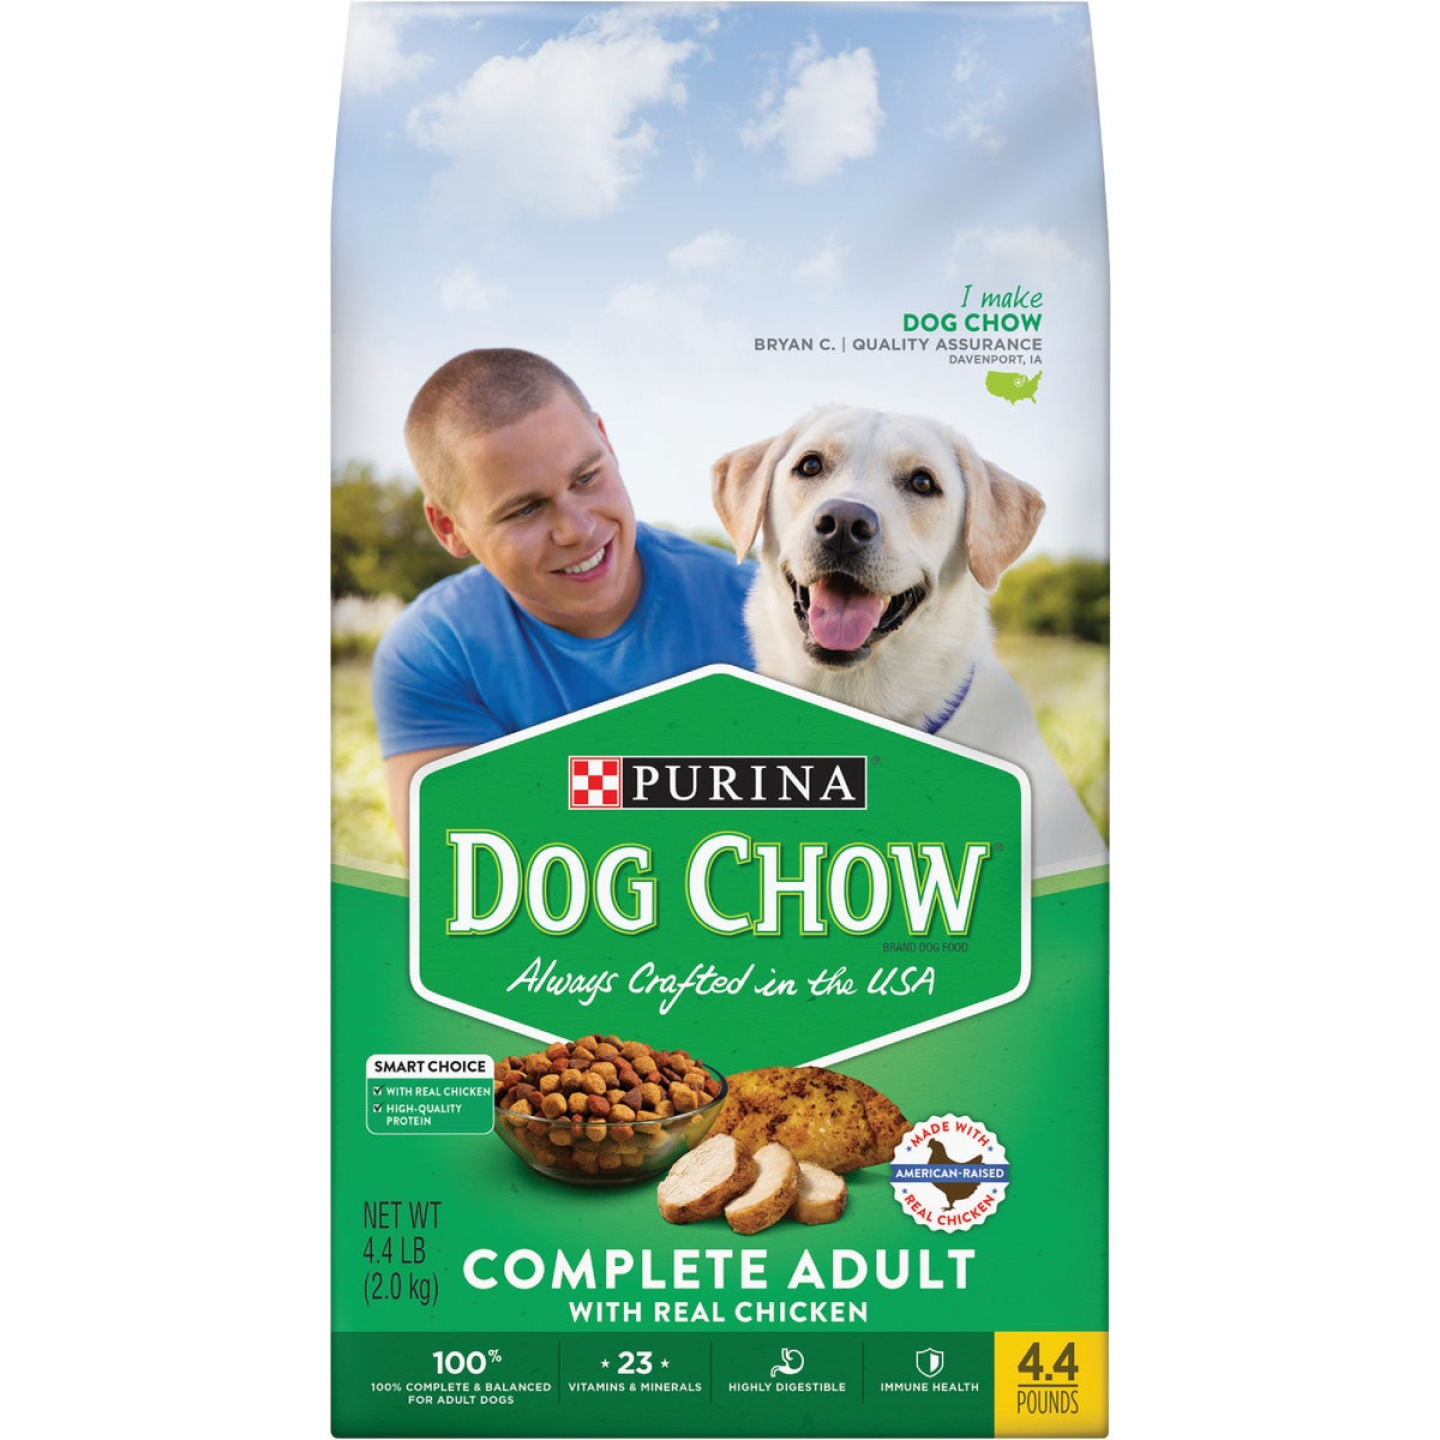 Purina Dog Chow 4.4 Lb. Chicken Flavor Dry Dog Food Image 1